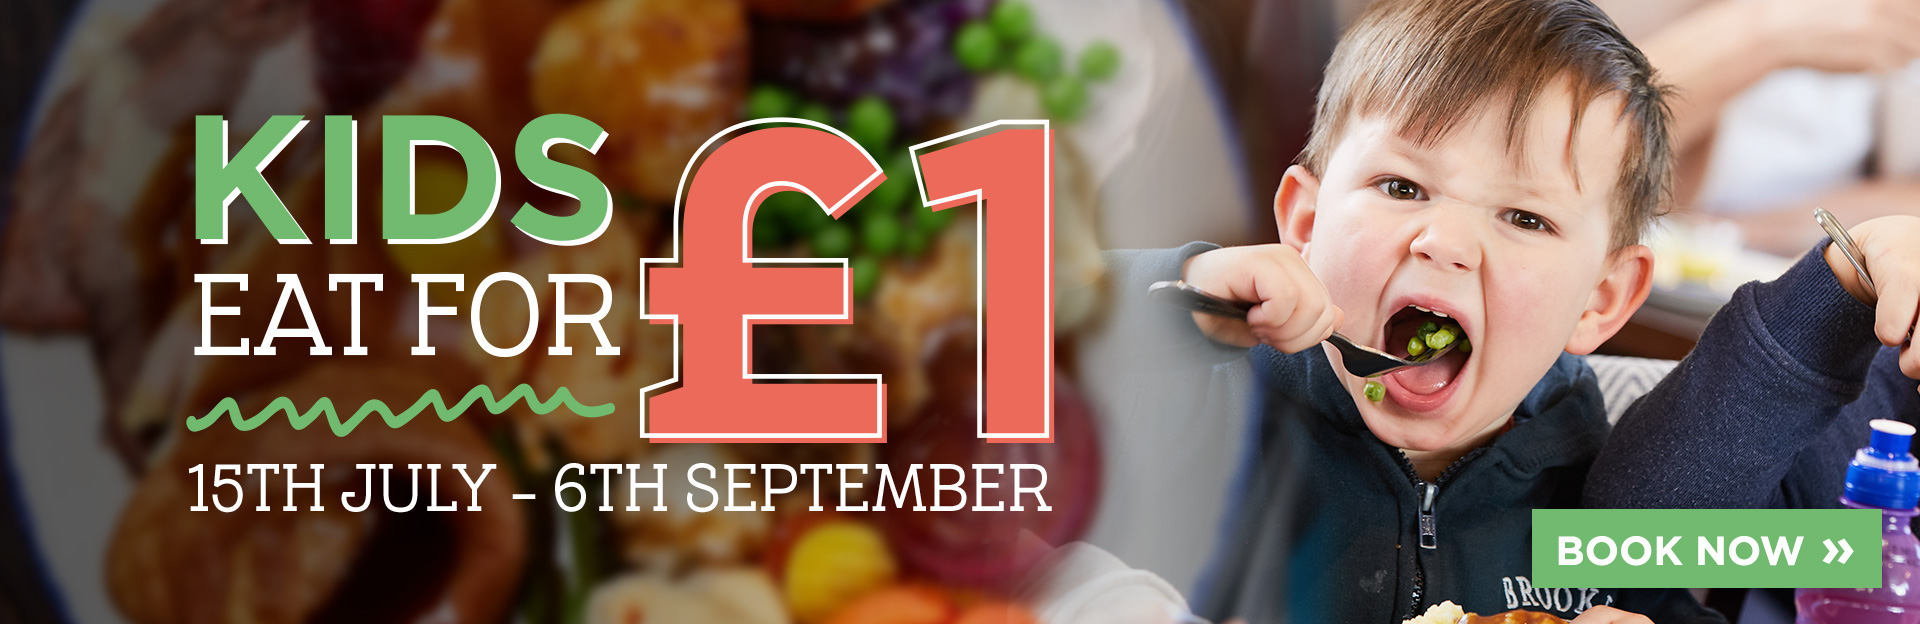 Kids eat for £1 at The Tollgate